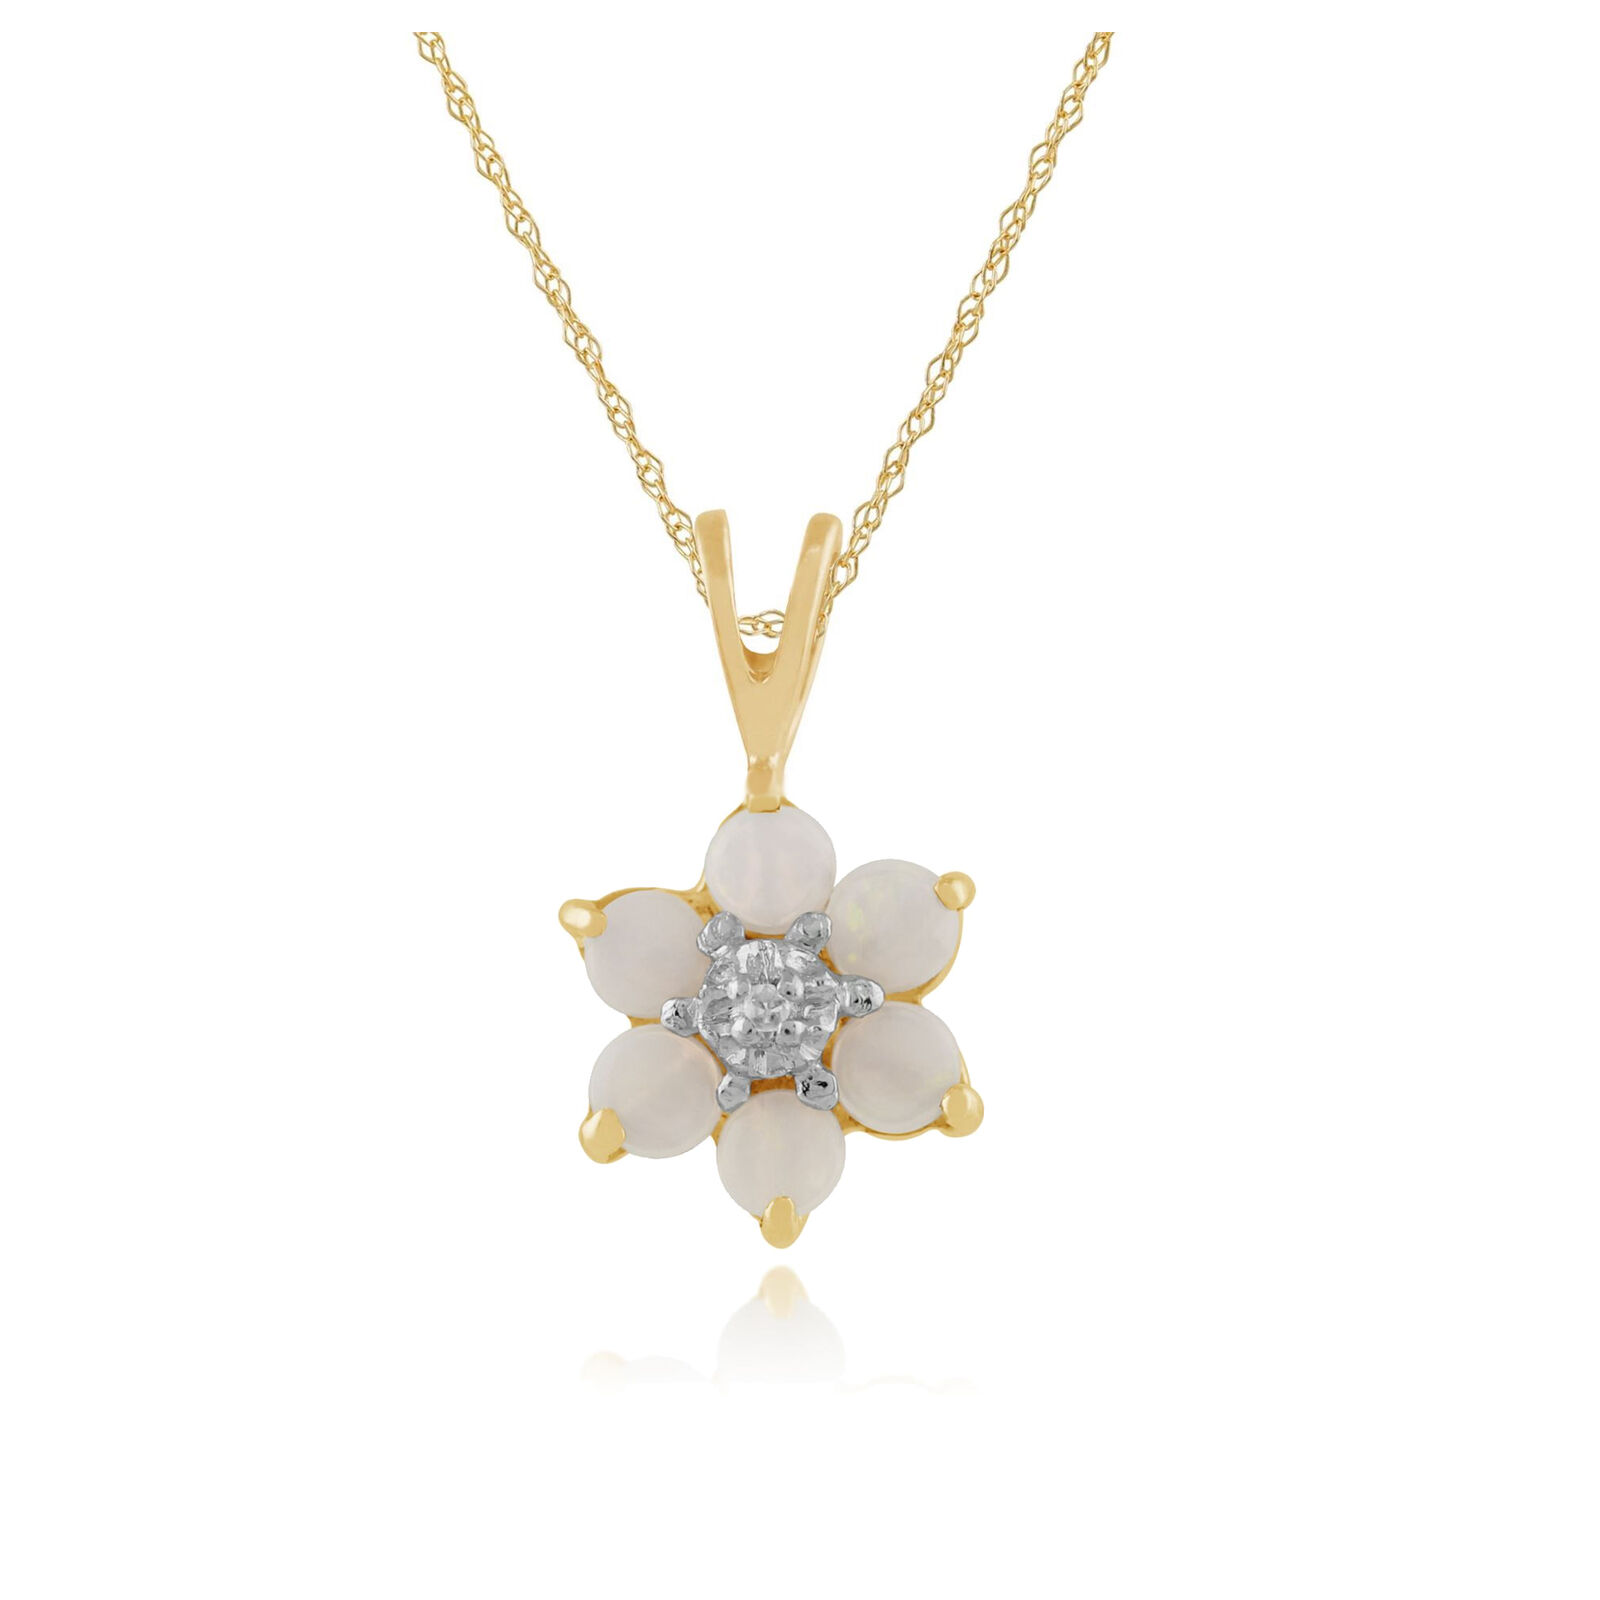 Gemondo 9ct Yellow gold 0.28ct Opal & Diamond Floral Pendant on Chain